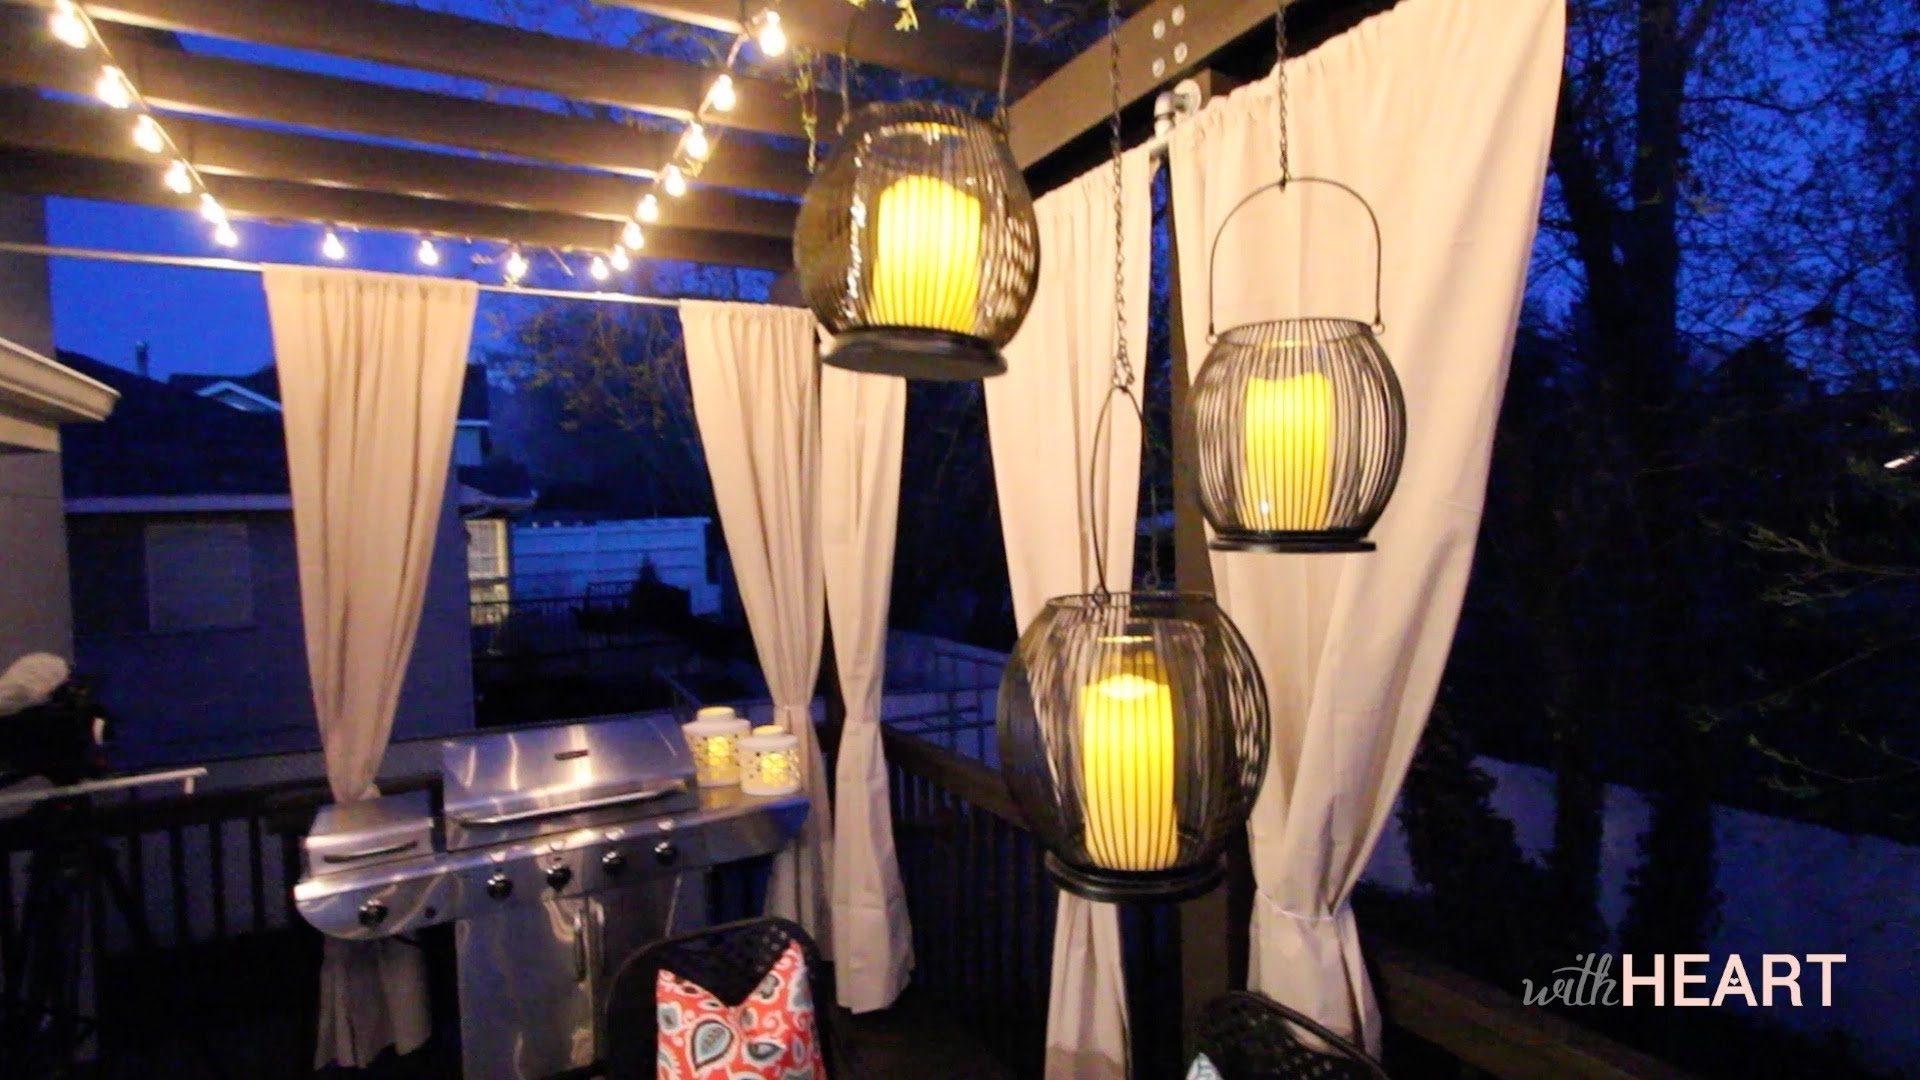 Outdoor String Lights And Hanging Lanterns Withheart Youtube Large Regarding Outdoor Hanging Lights On String (View 12 of 15)